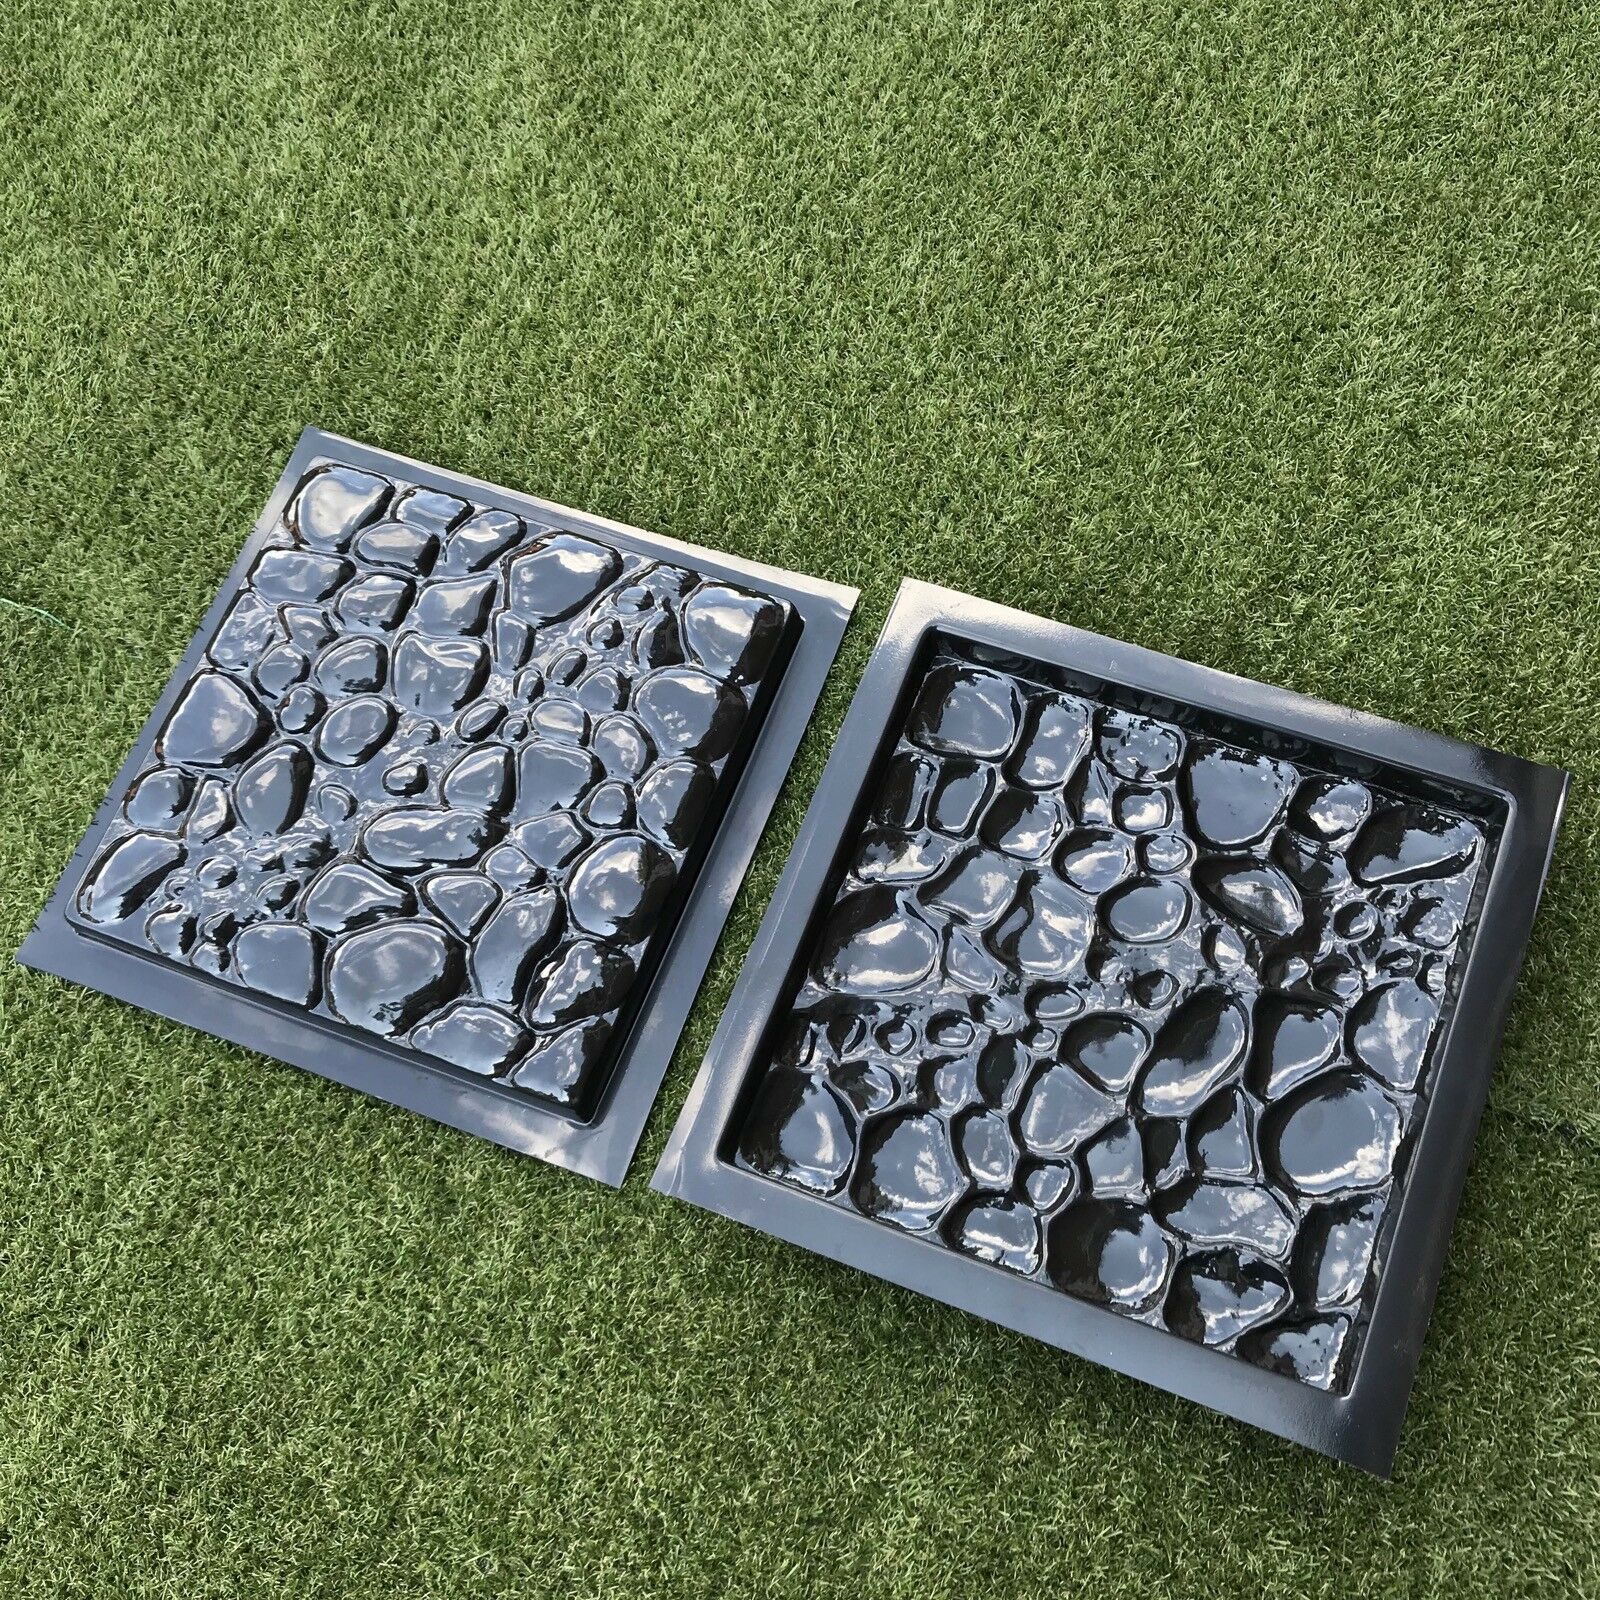 2 Pcs Plastic MOLDS For Concrete Garden Stepping Stone Path Patio MOULDS  CEMENT 1 Of 12Only 1 Available See More